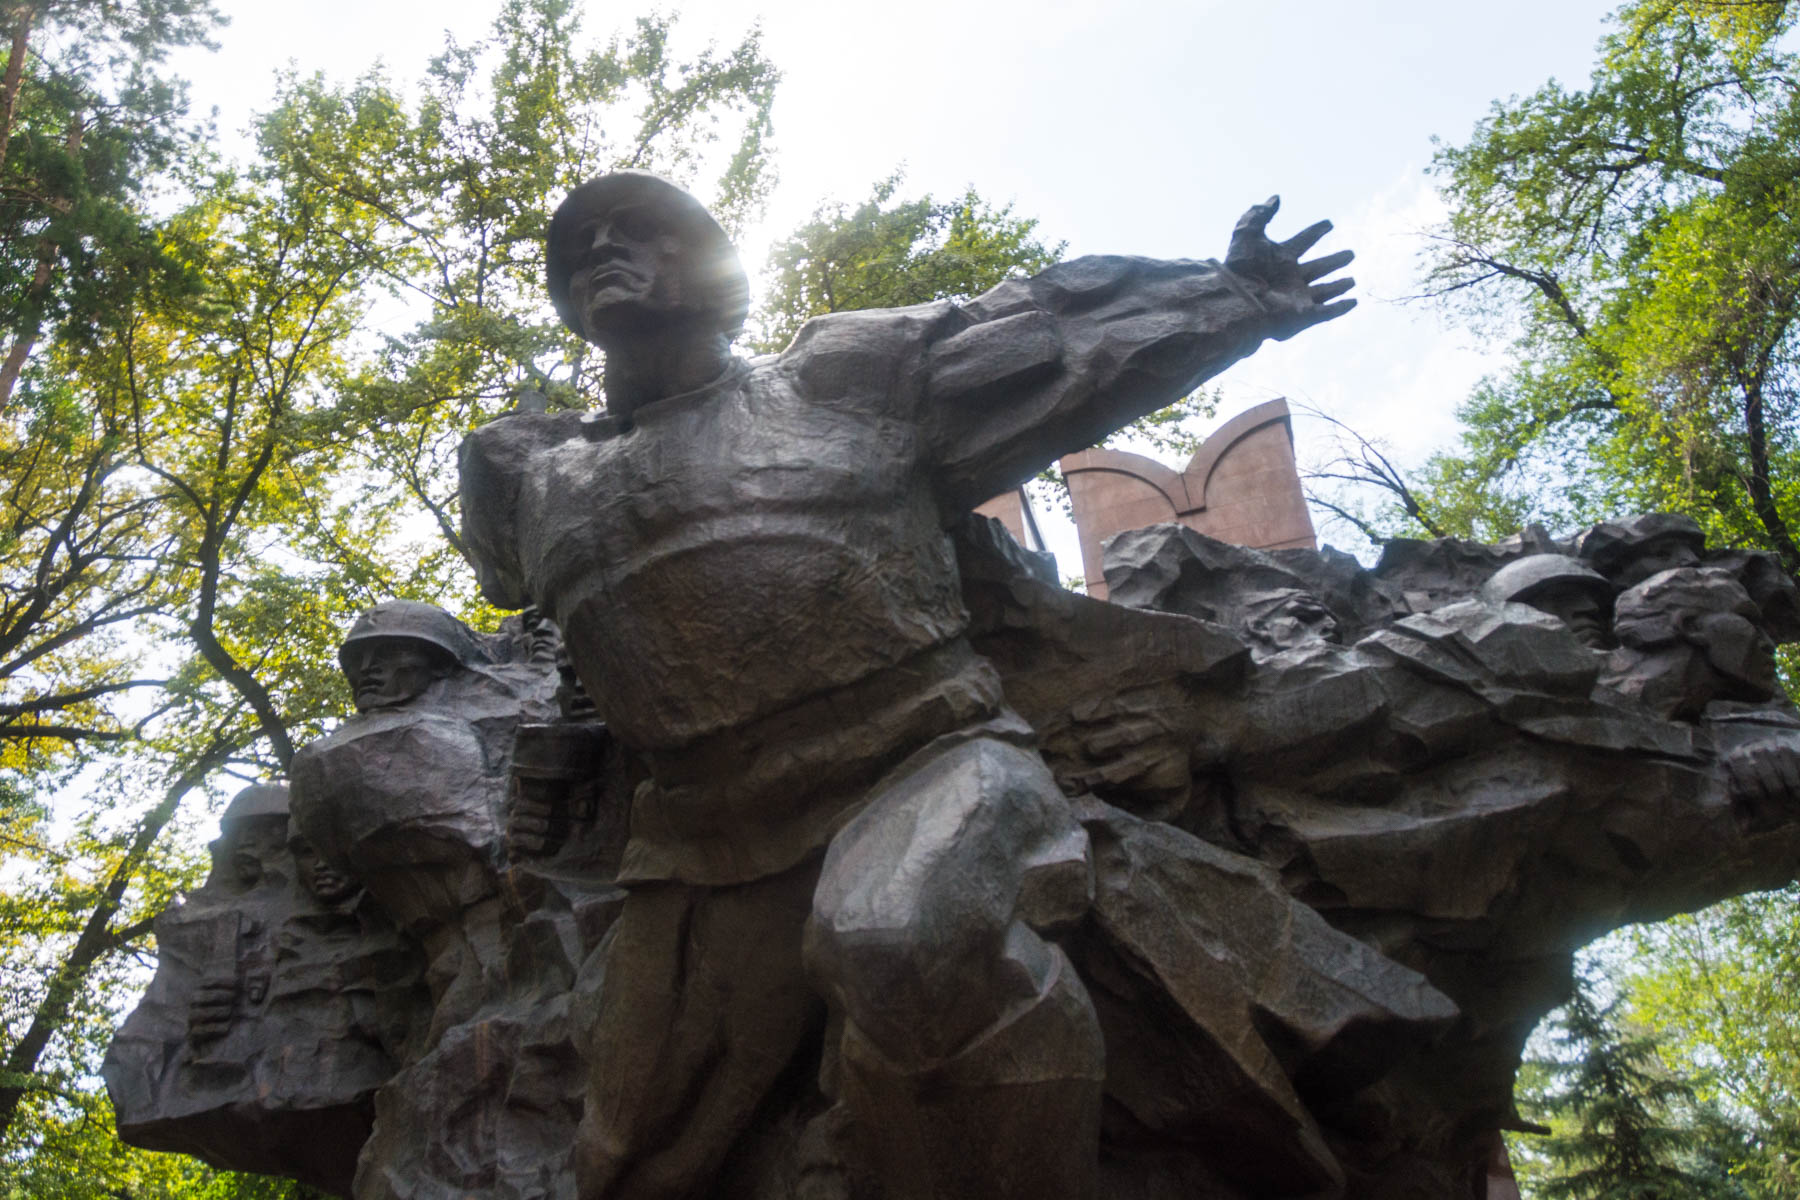 Soviet statue in Almaty's Panfilov Park - Lost With Purpose